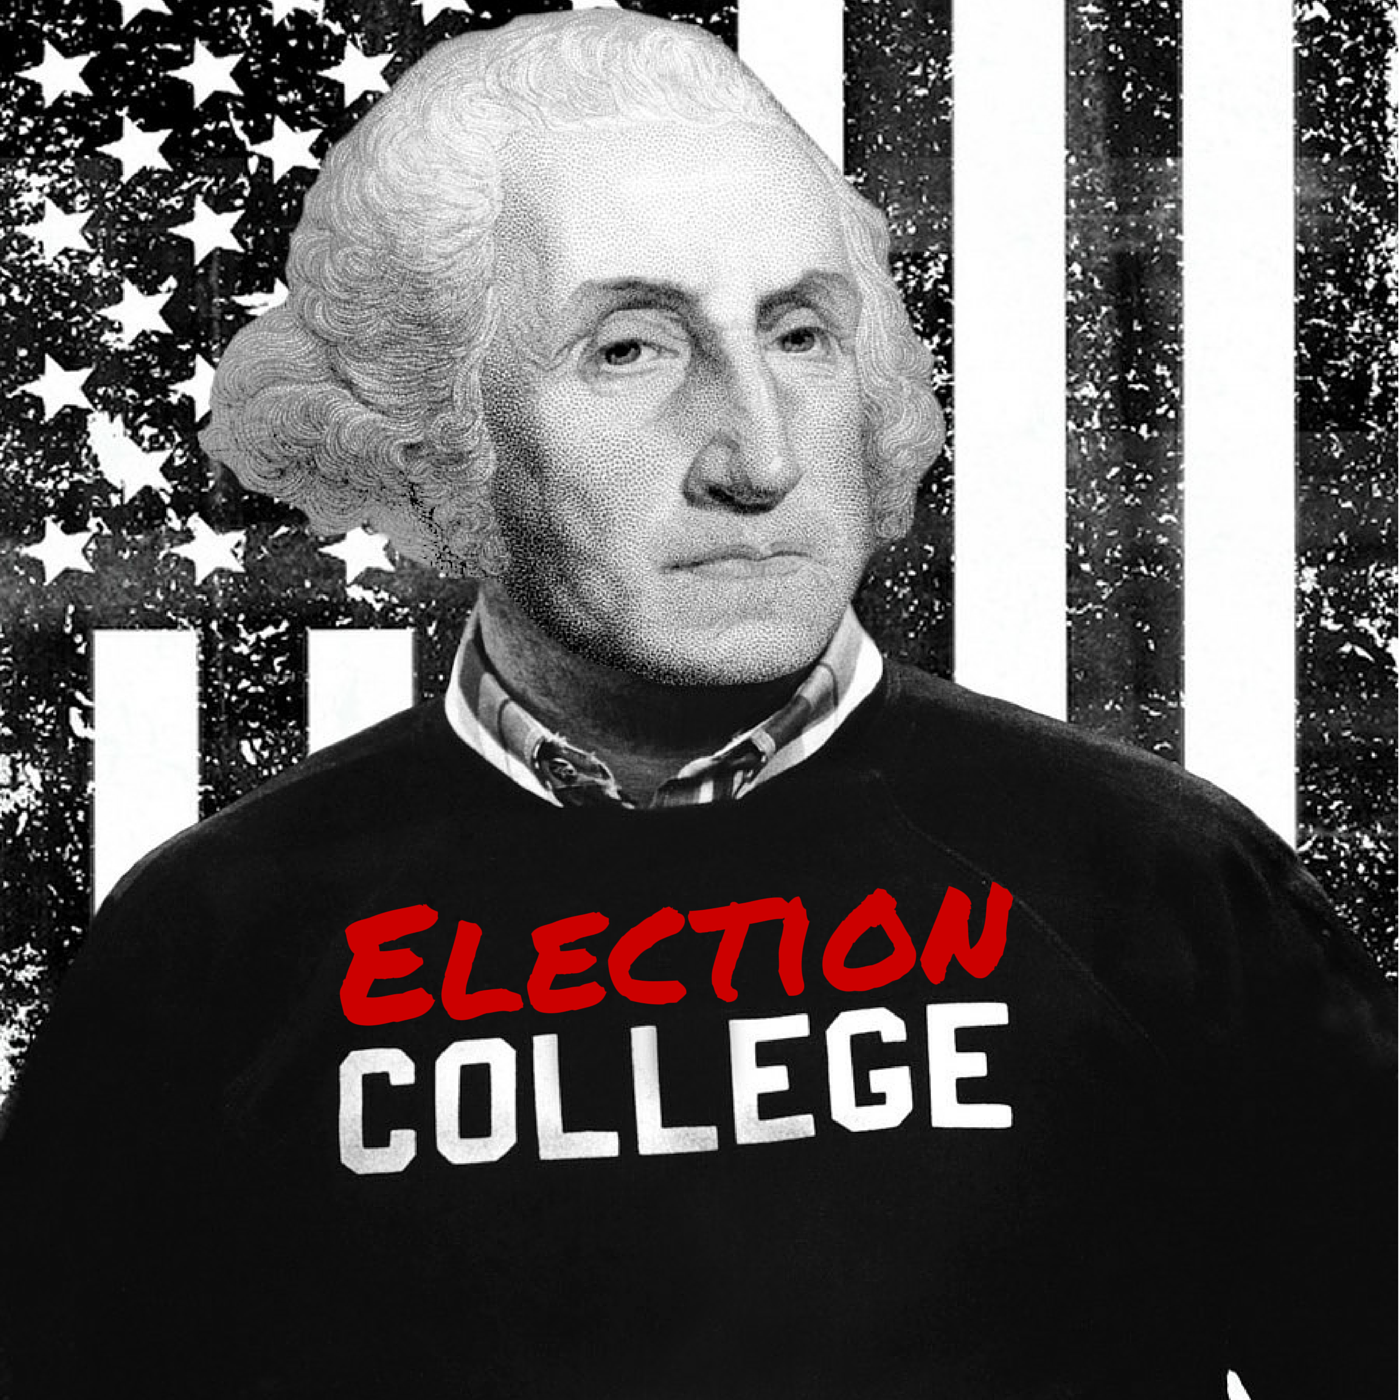 We Hate Change - Election of 1956 | Episode #058 | Election College: United States Presidential Election History